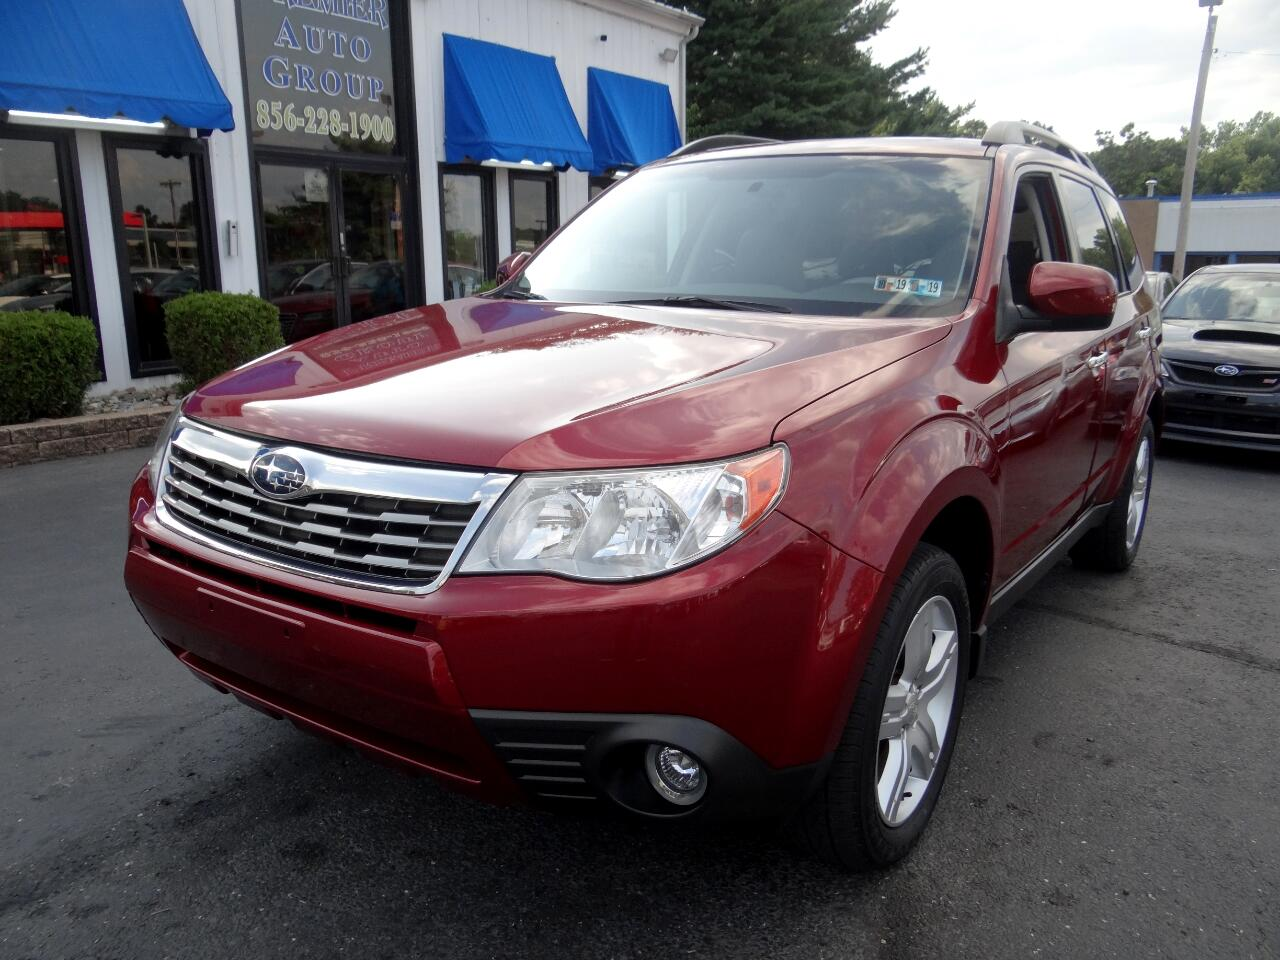 Subaru Forester 4dr Auto 2.5X Limited w/Navigation System 2010